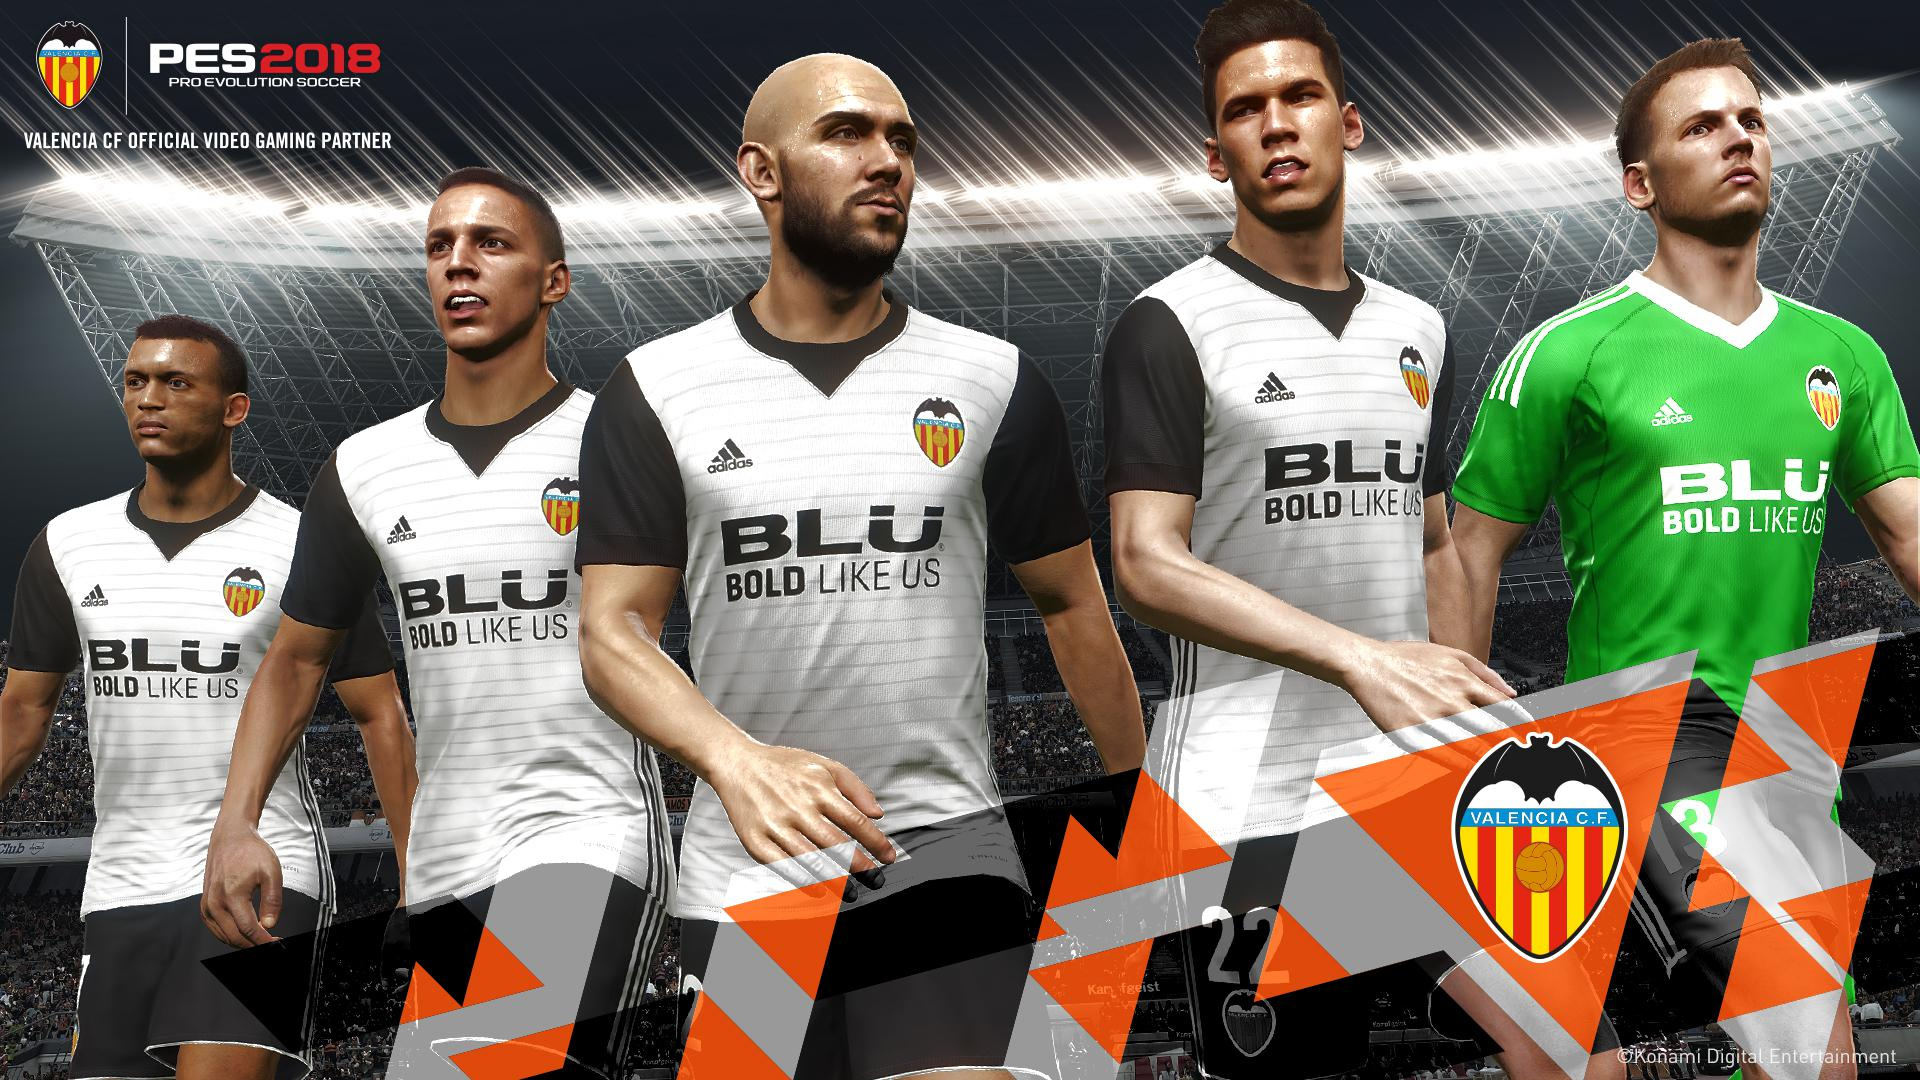 Valencia is the latest team to join the PES family